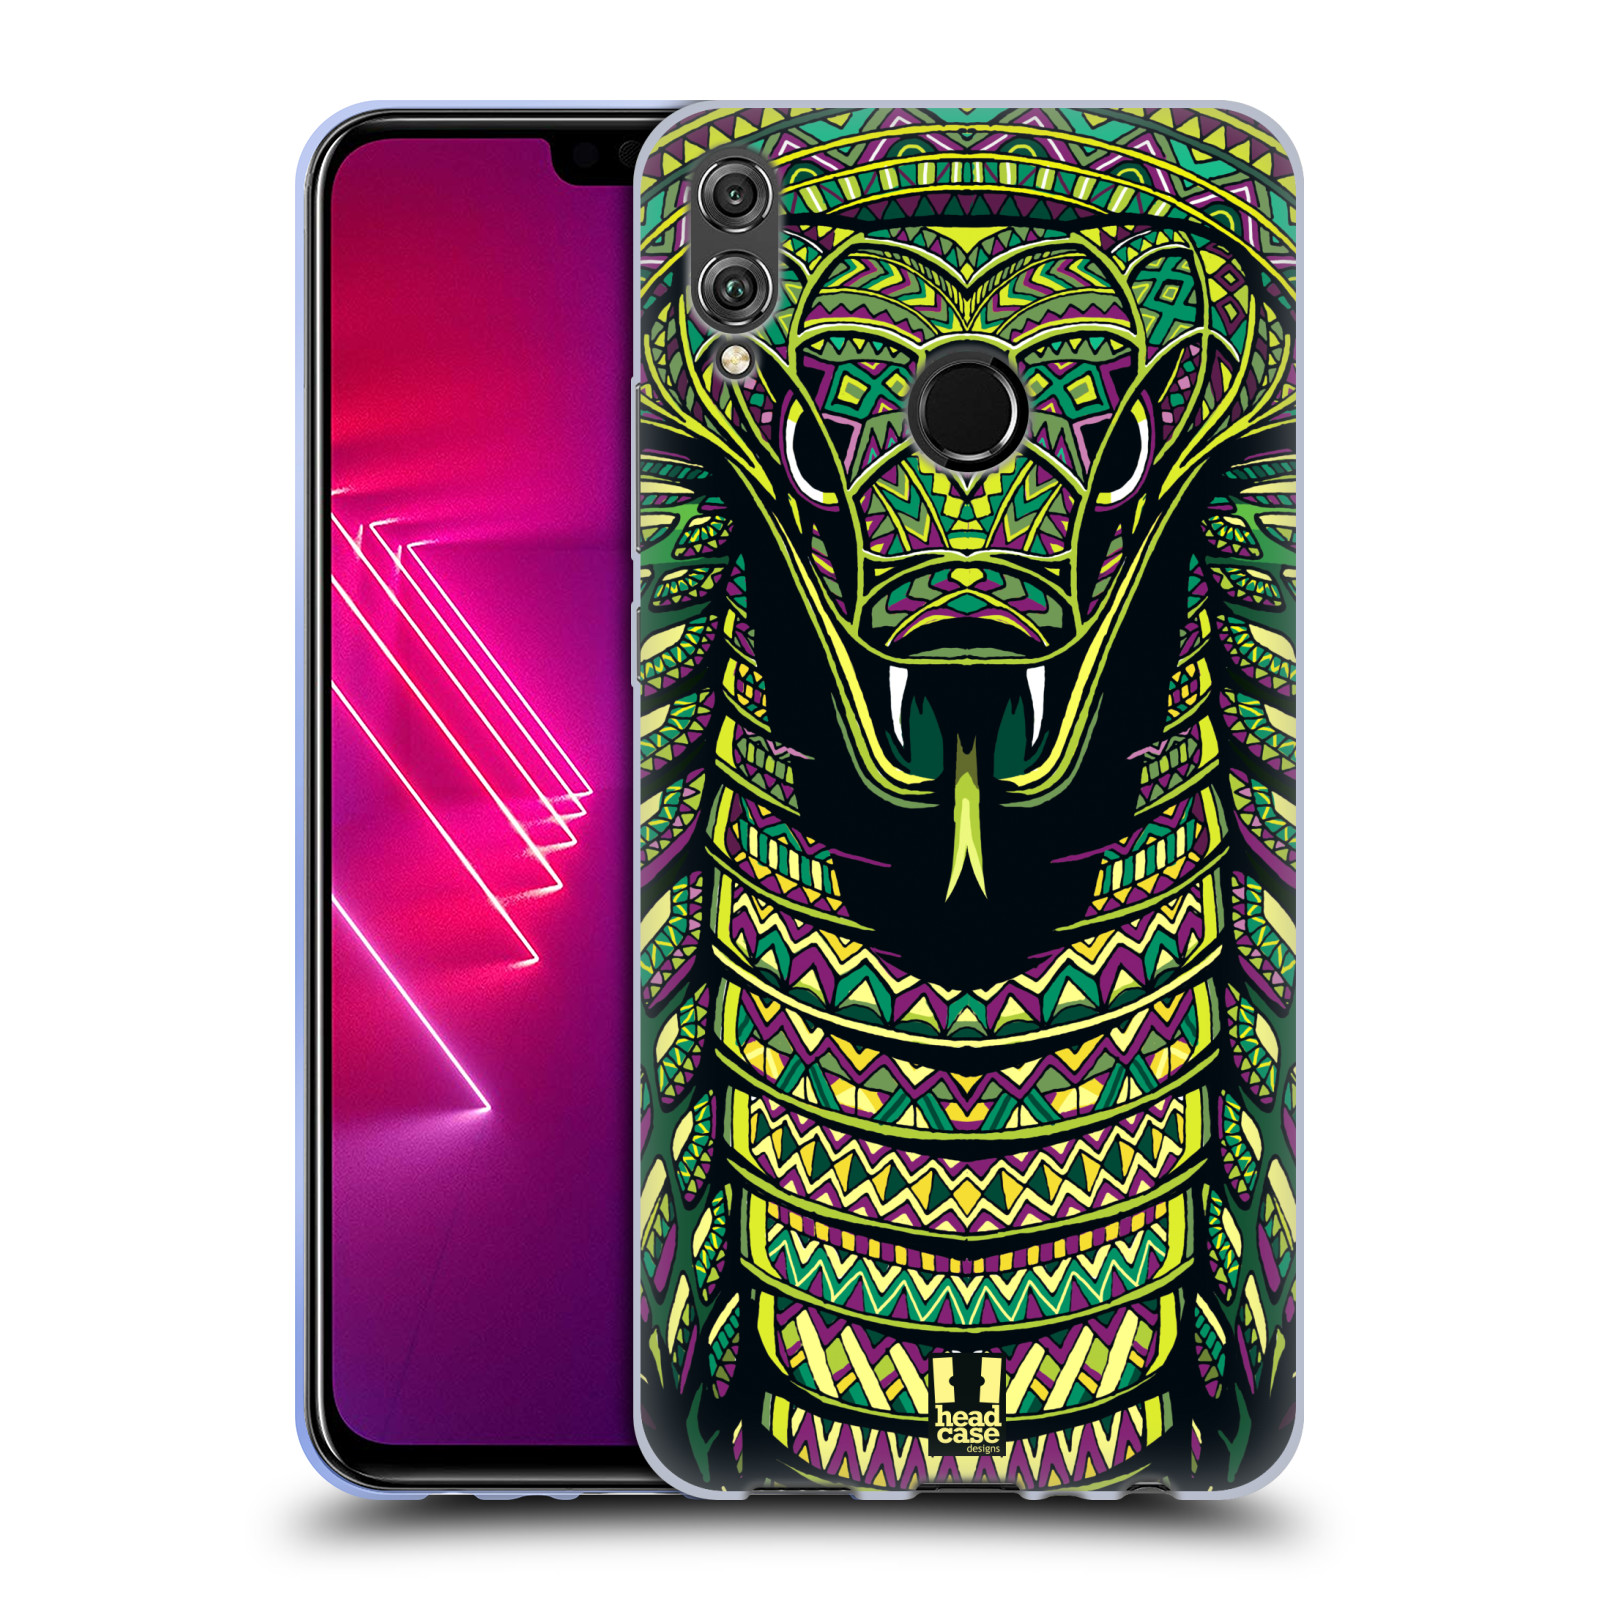 Silikonové pouzdro na mobil Honor View 10 Lite - Head Case - AZTEC HAD